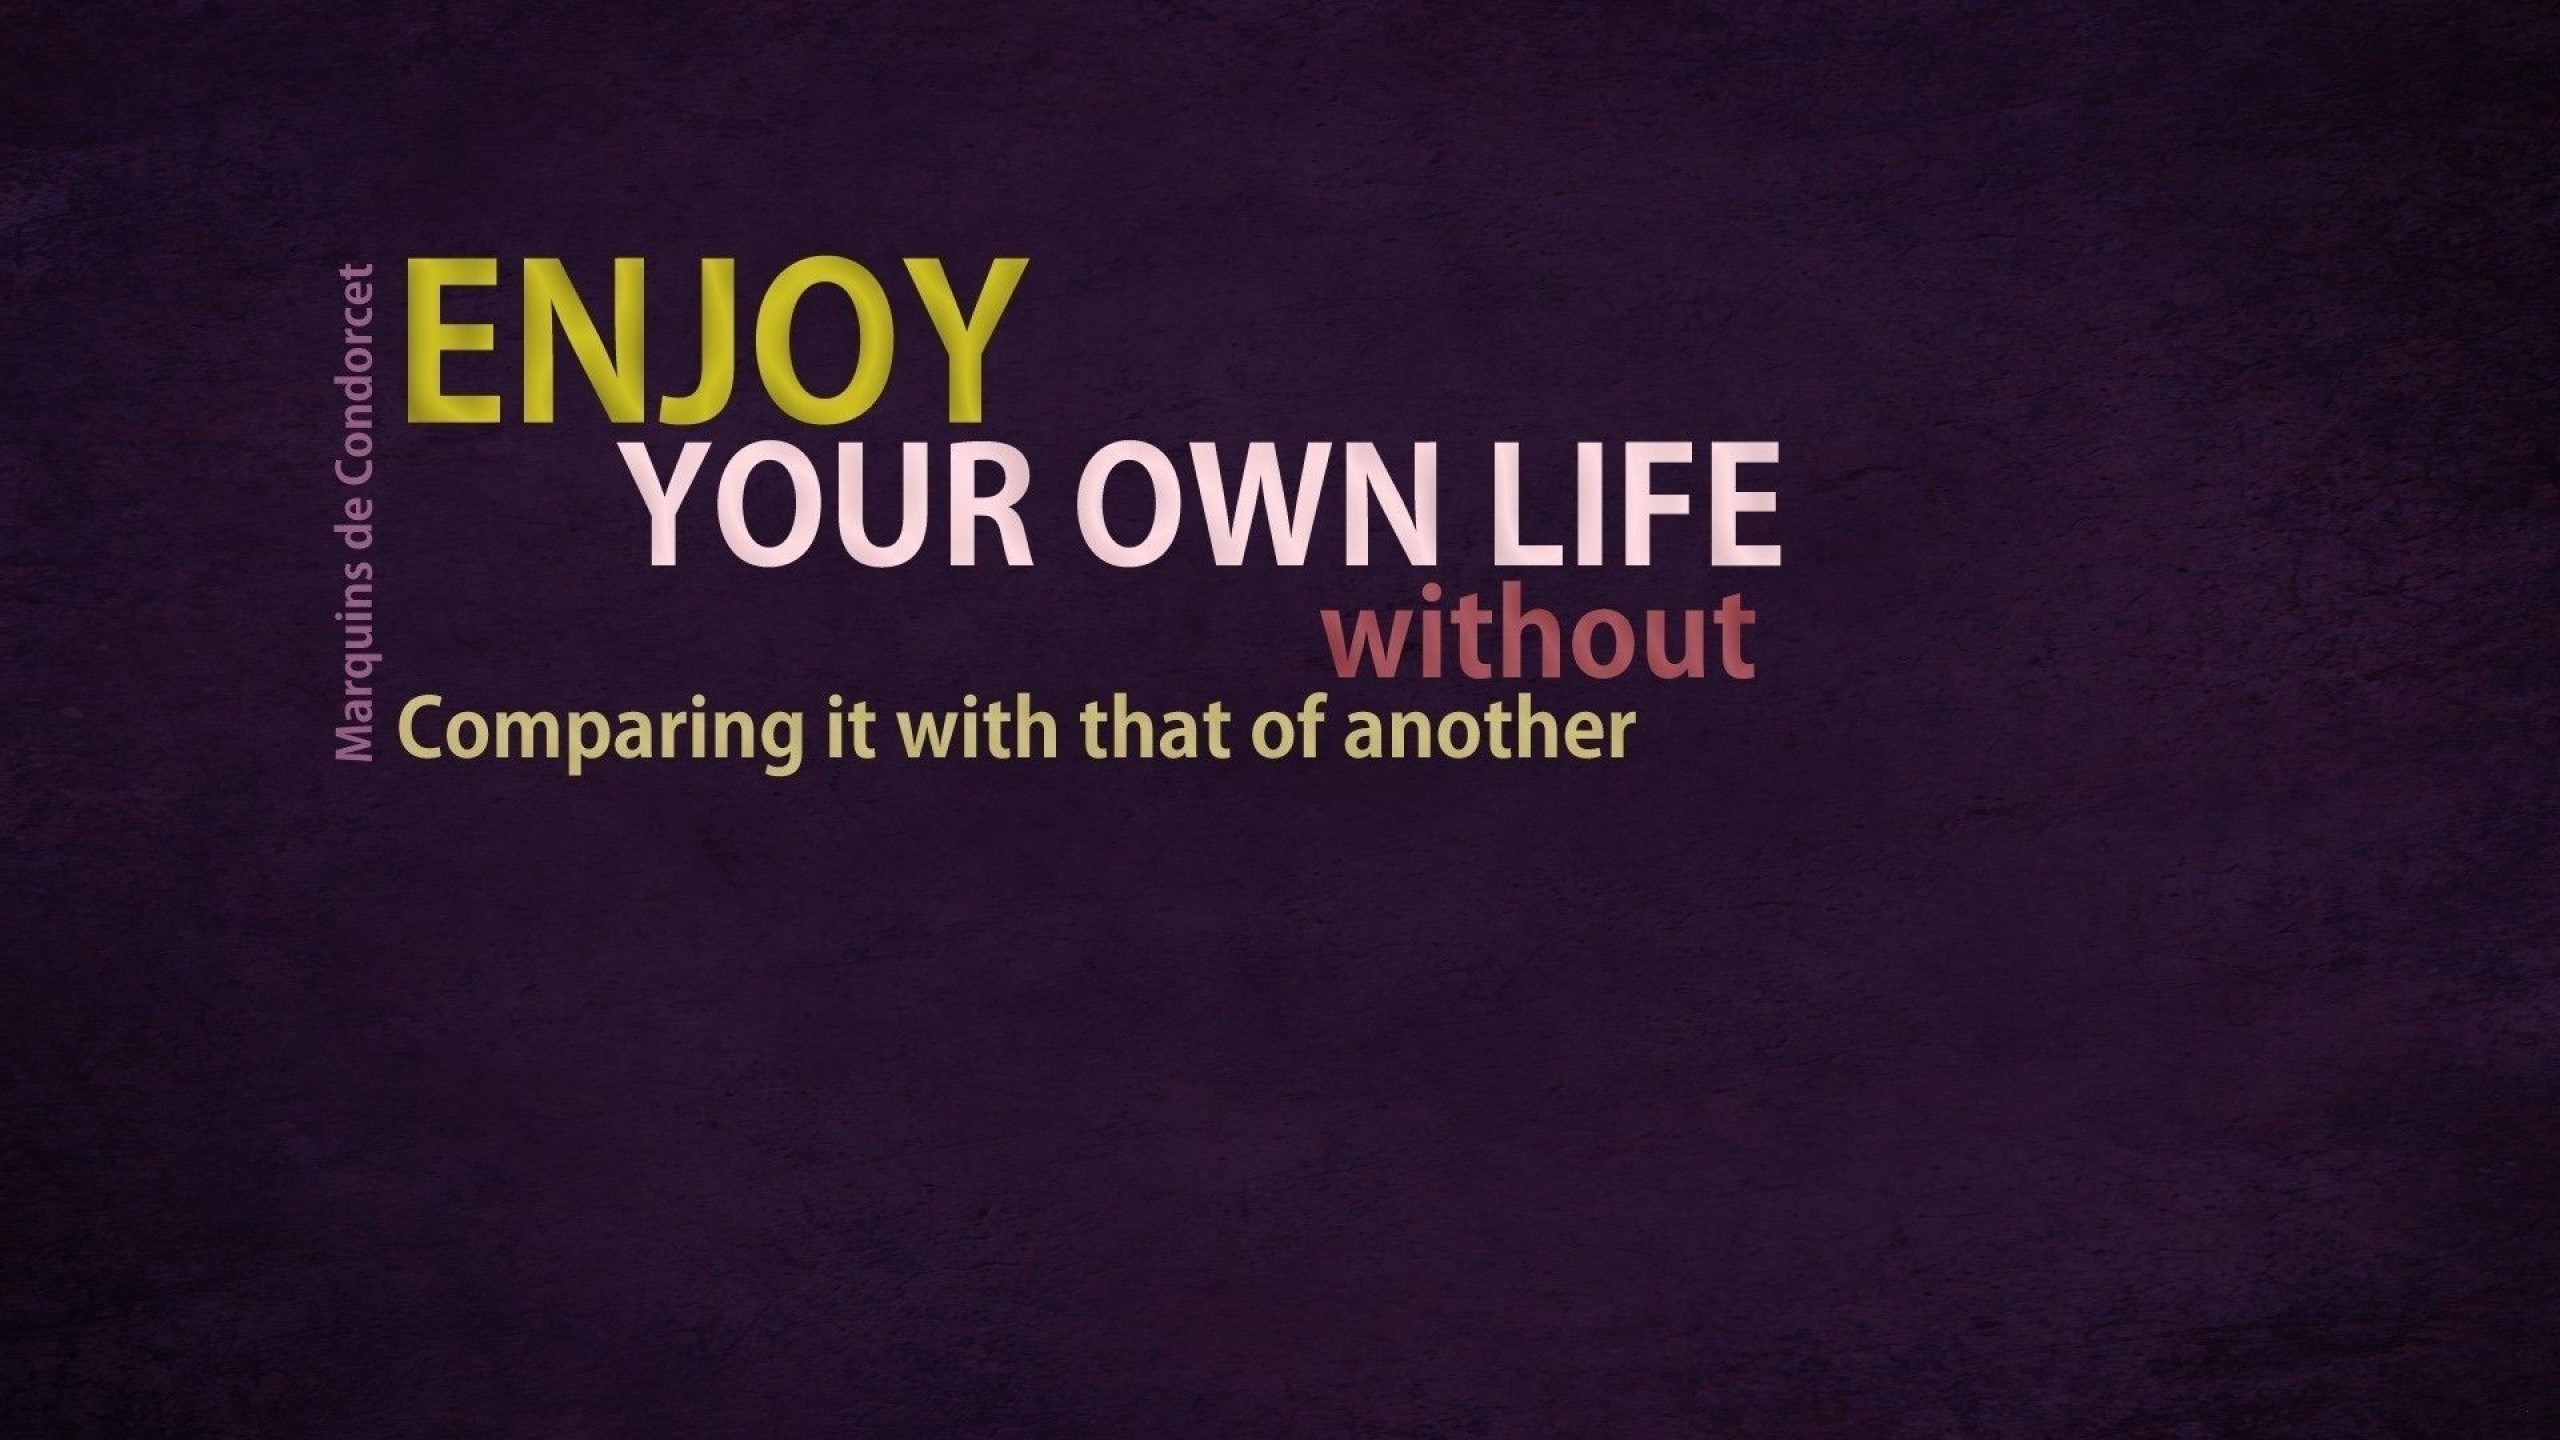 HD Quotes Wallpapers For Laptop